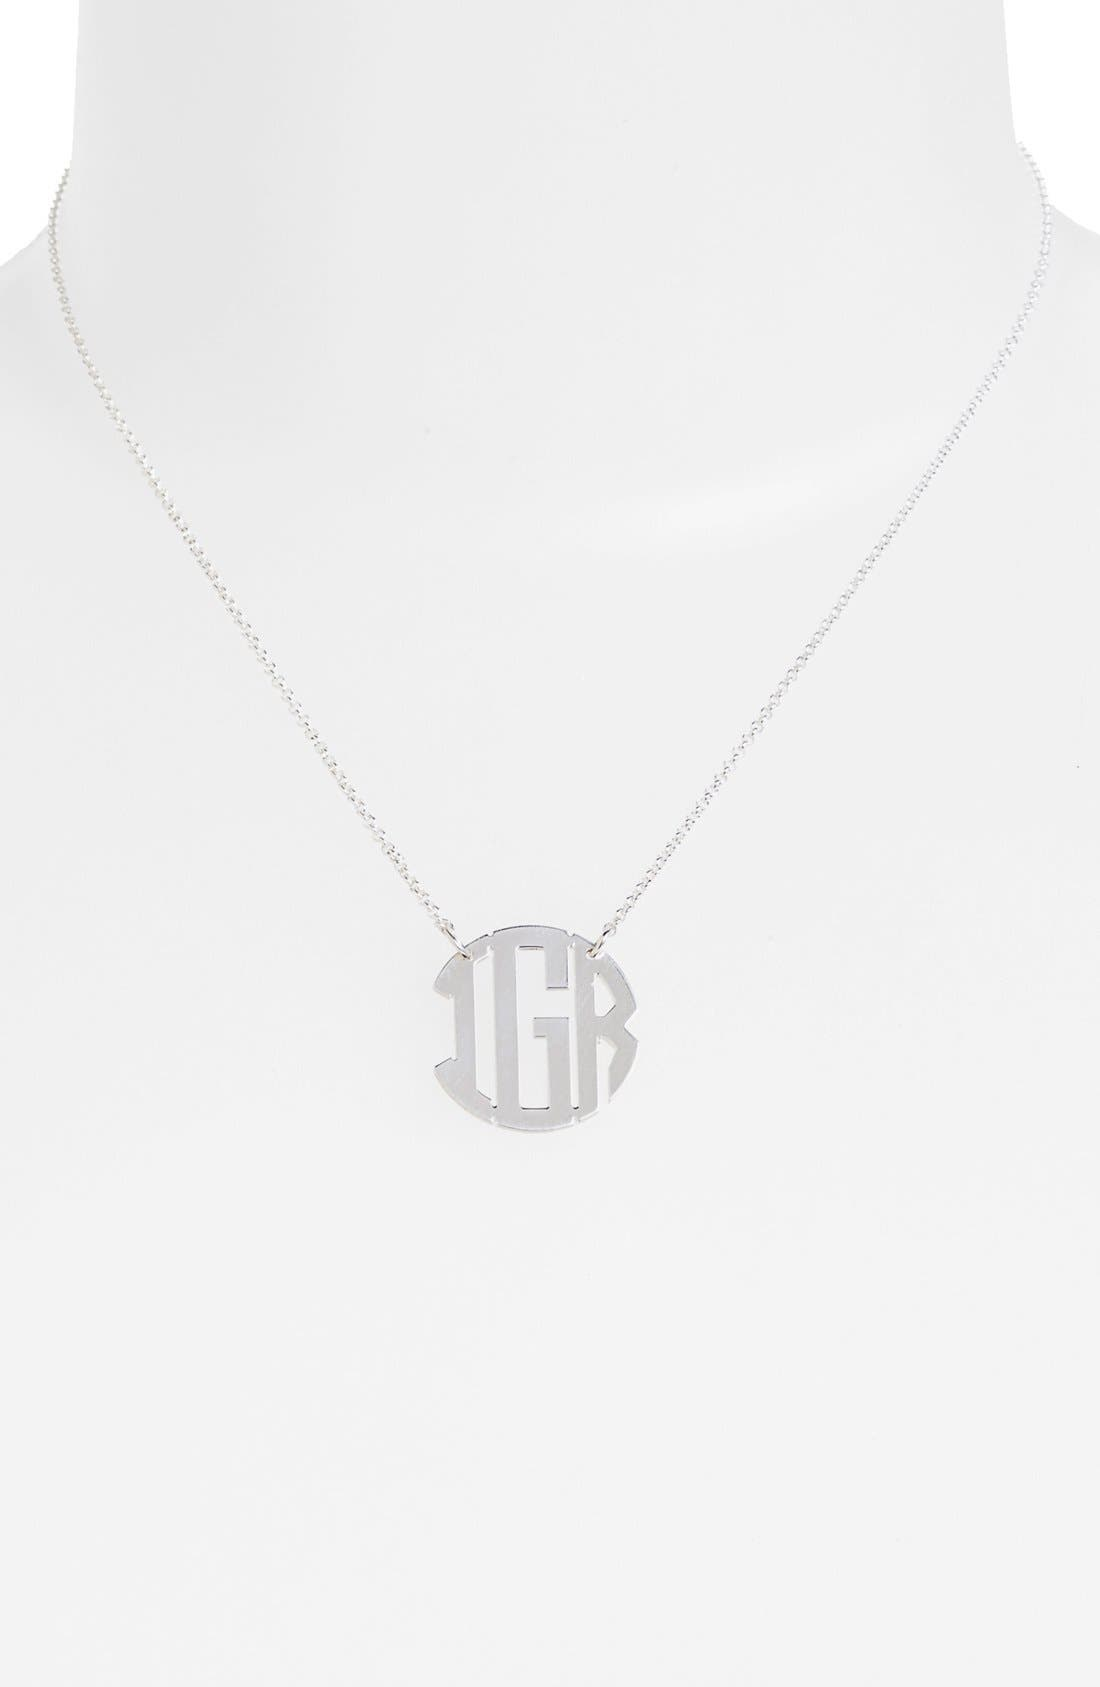 Personalized 3-Initial Block Monogram Necklace,                             Alternate thumbnail 2, color,                             040